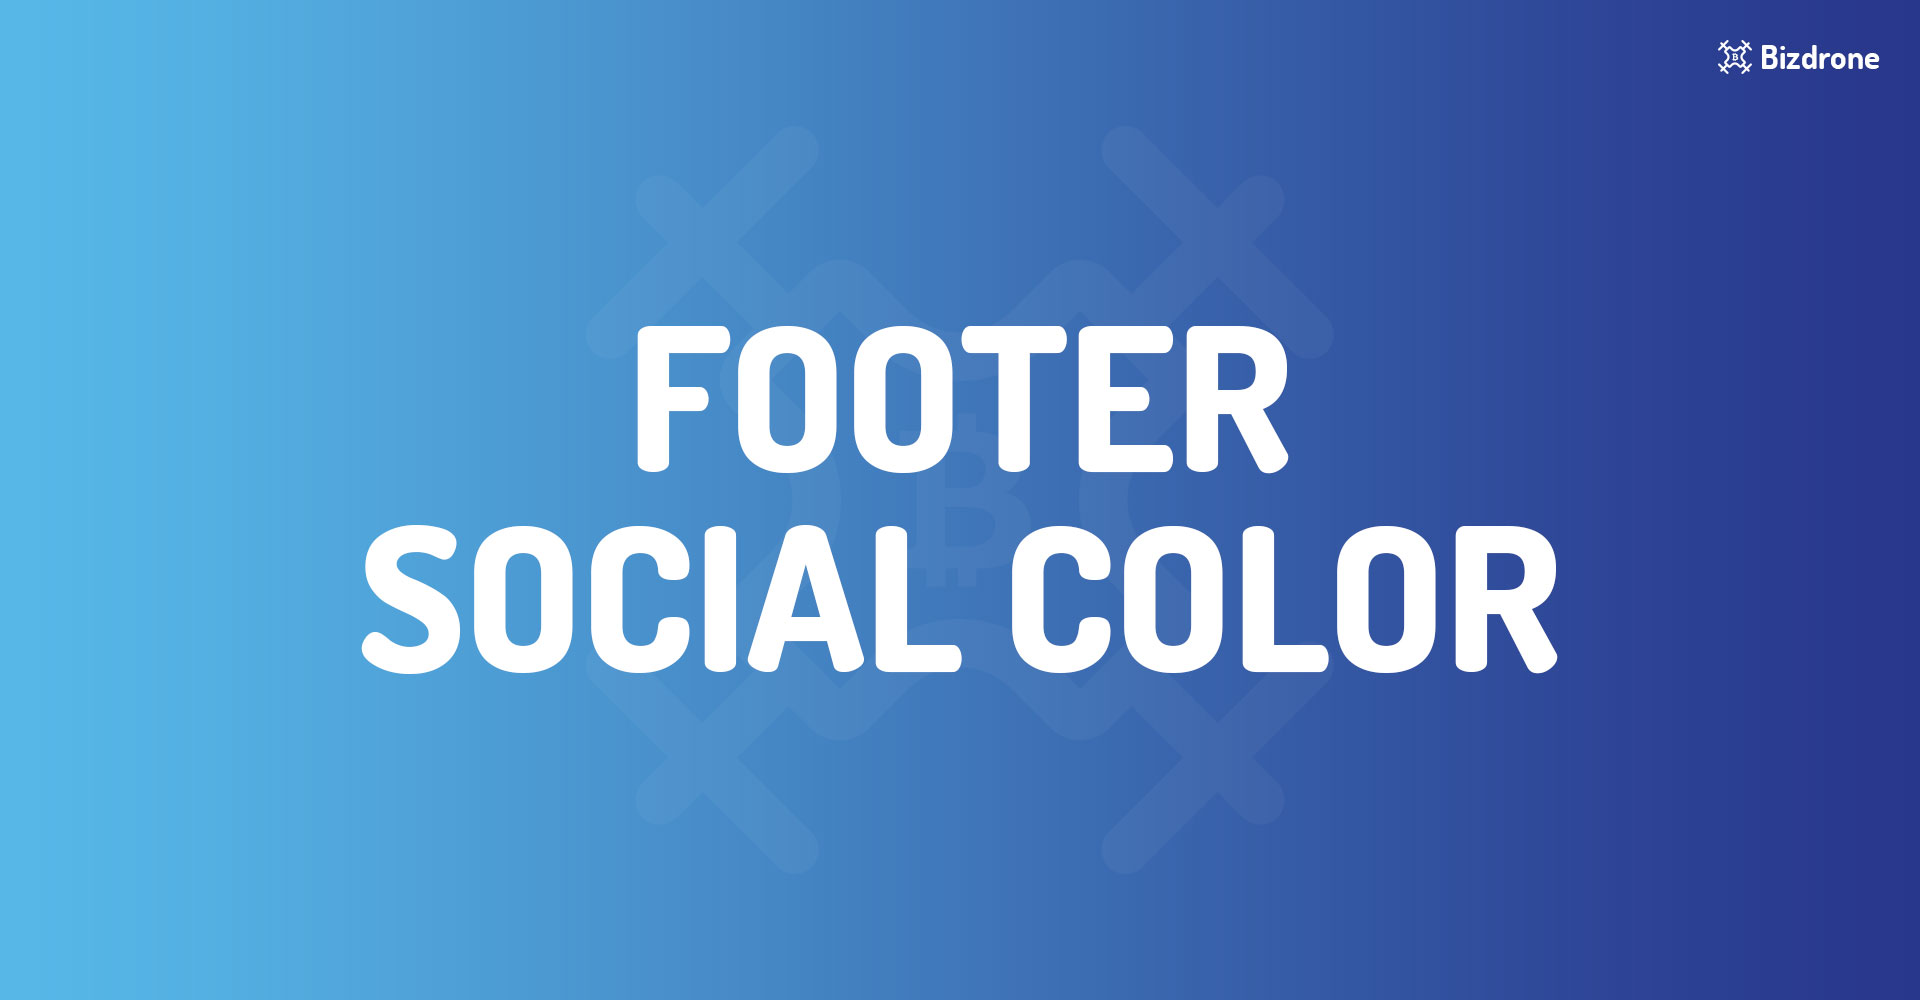 Footer Social color